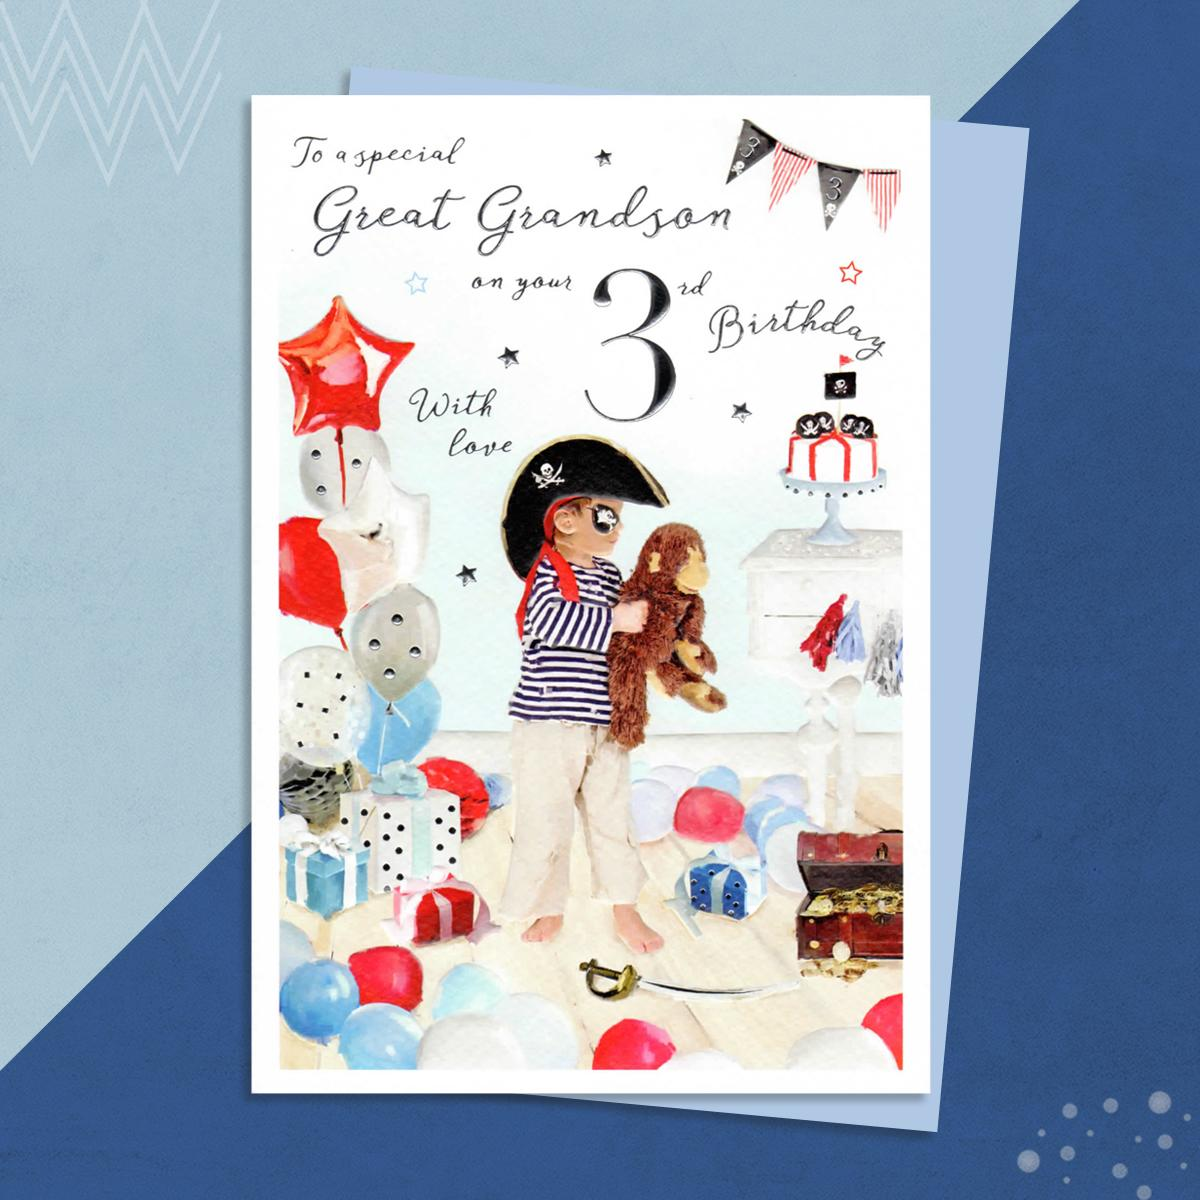 Age 3 Pirate Themed Great Grandson Birthday Card Sitting On A Display Shelf